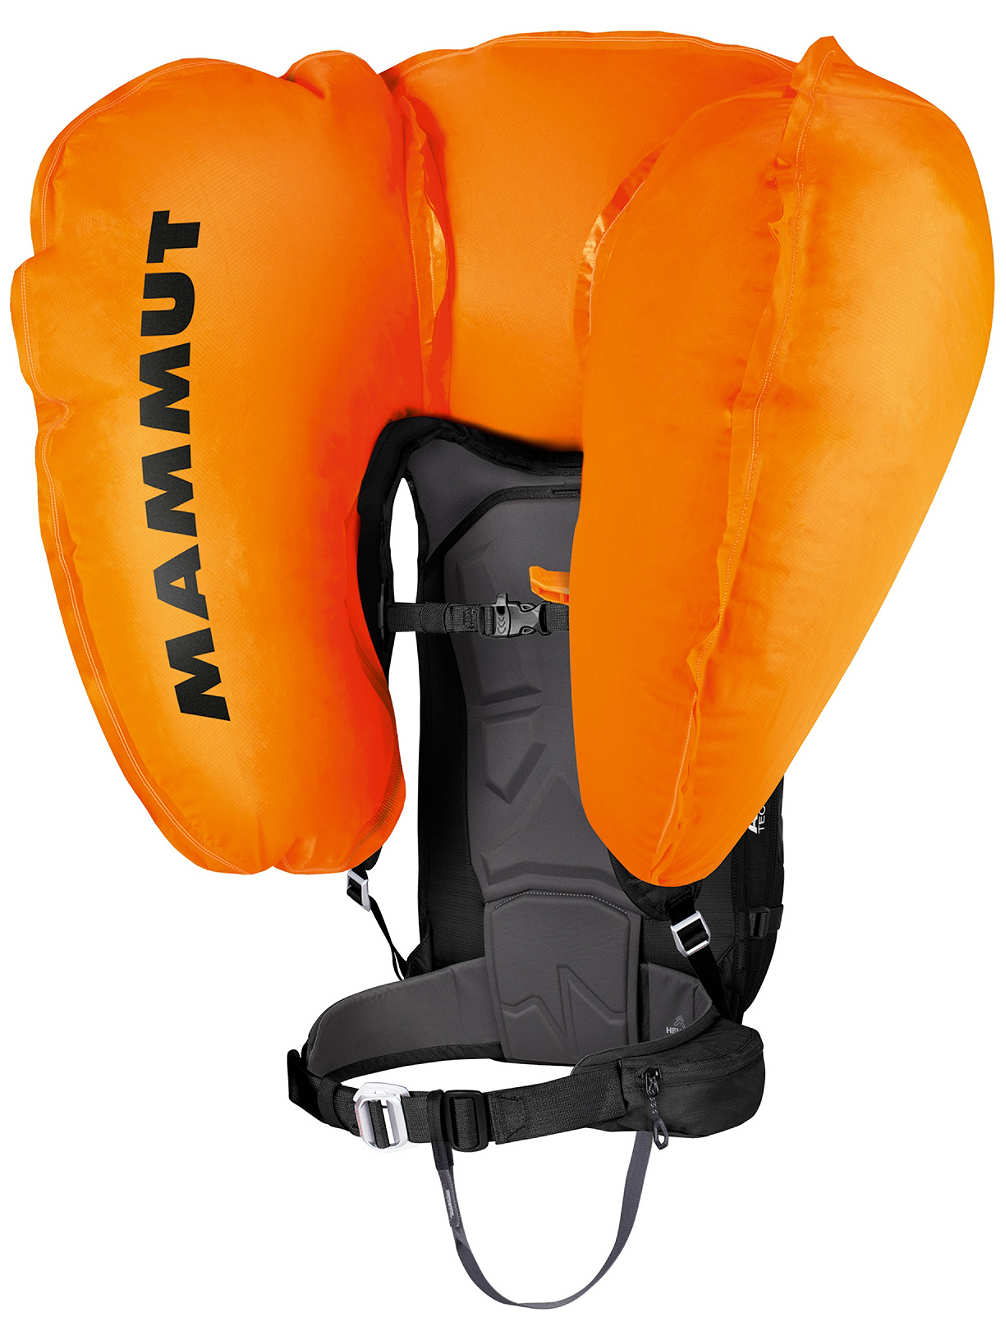 Ride+Protection+Airbag+3+0+Backpack (2).jpg